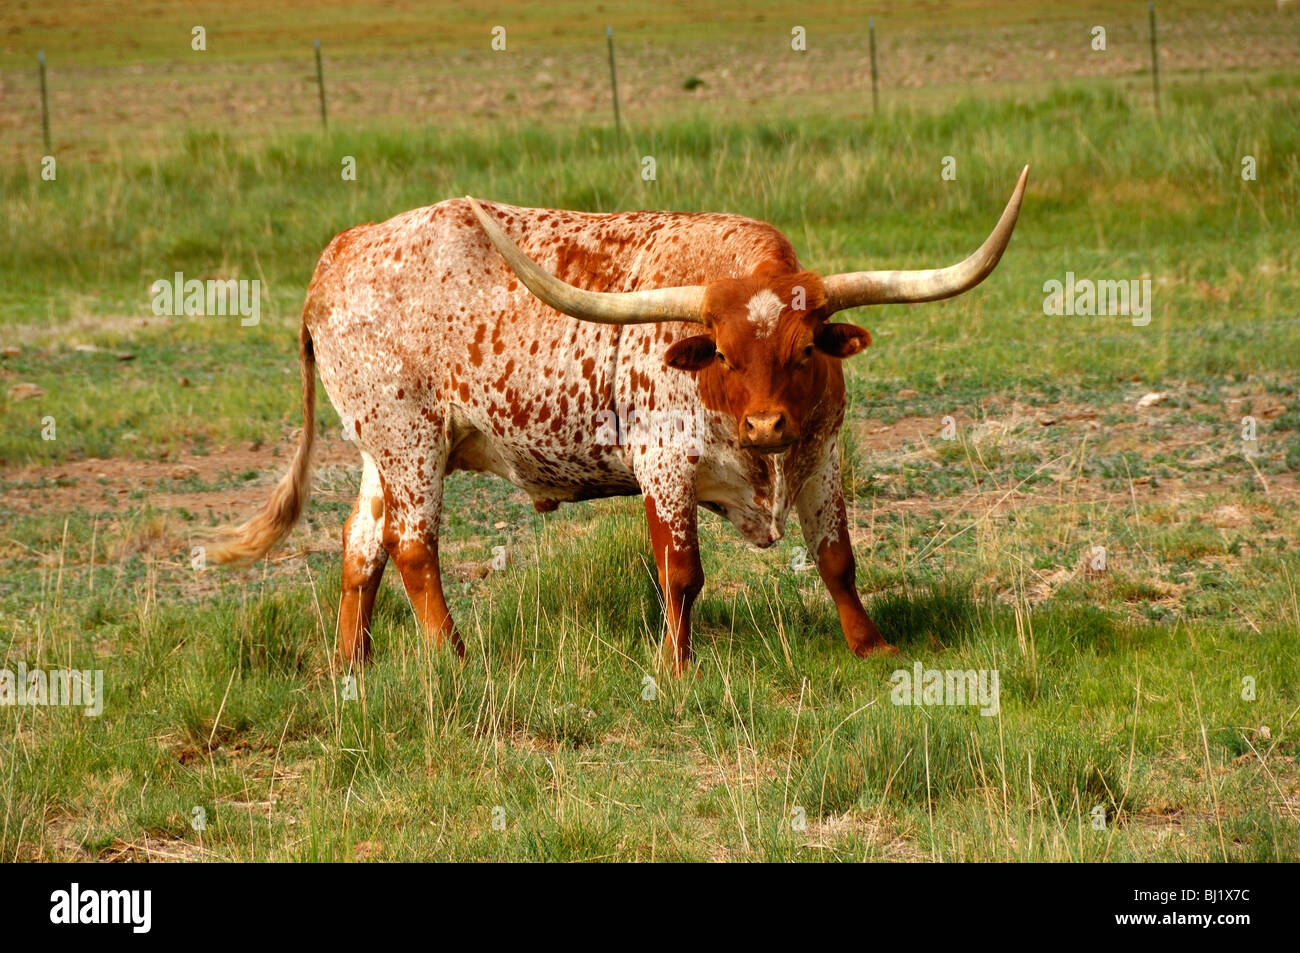 A splendid and aggressive Longhorn Bull near the City of Richfield,Utah State, United States of America - Stock Image